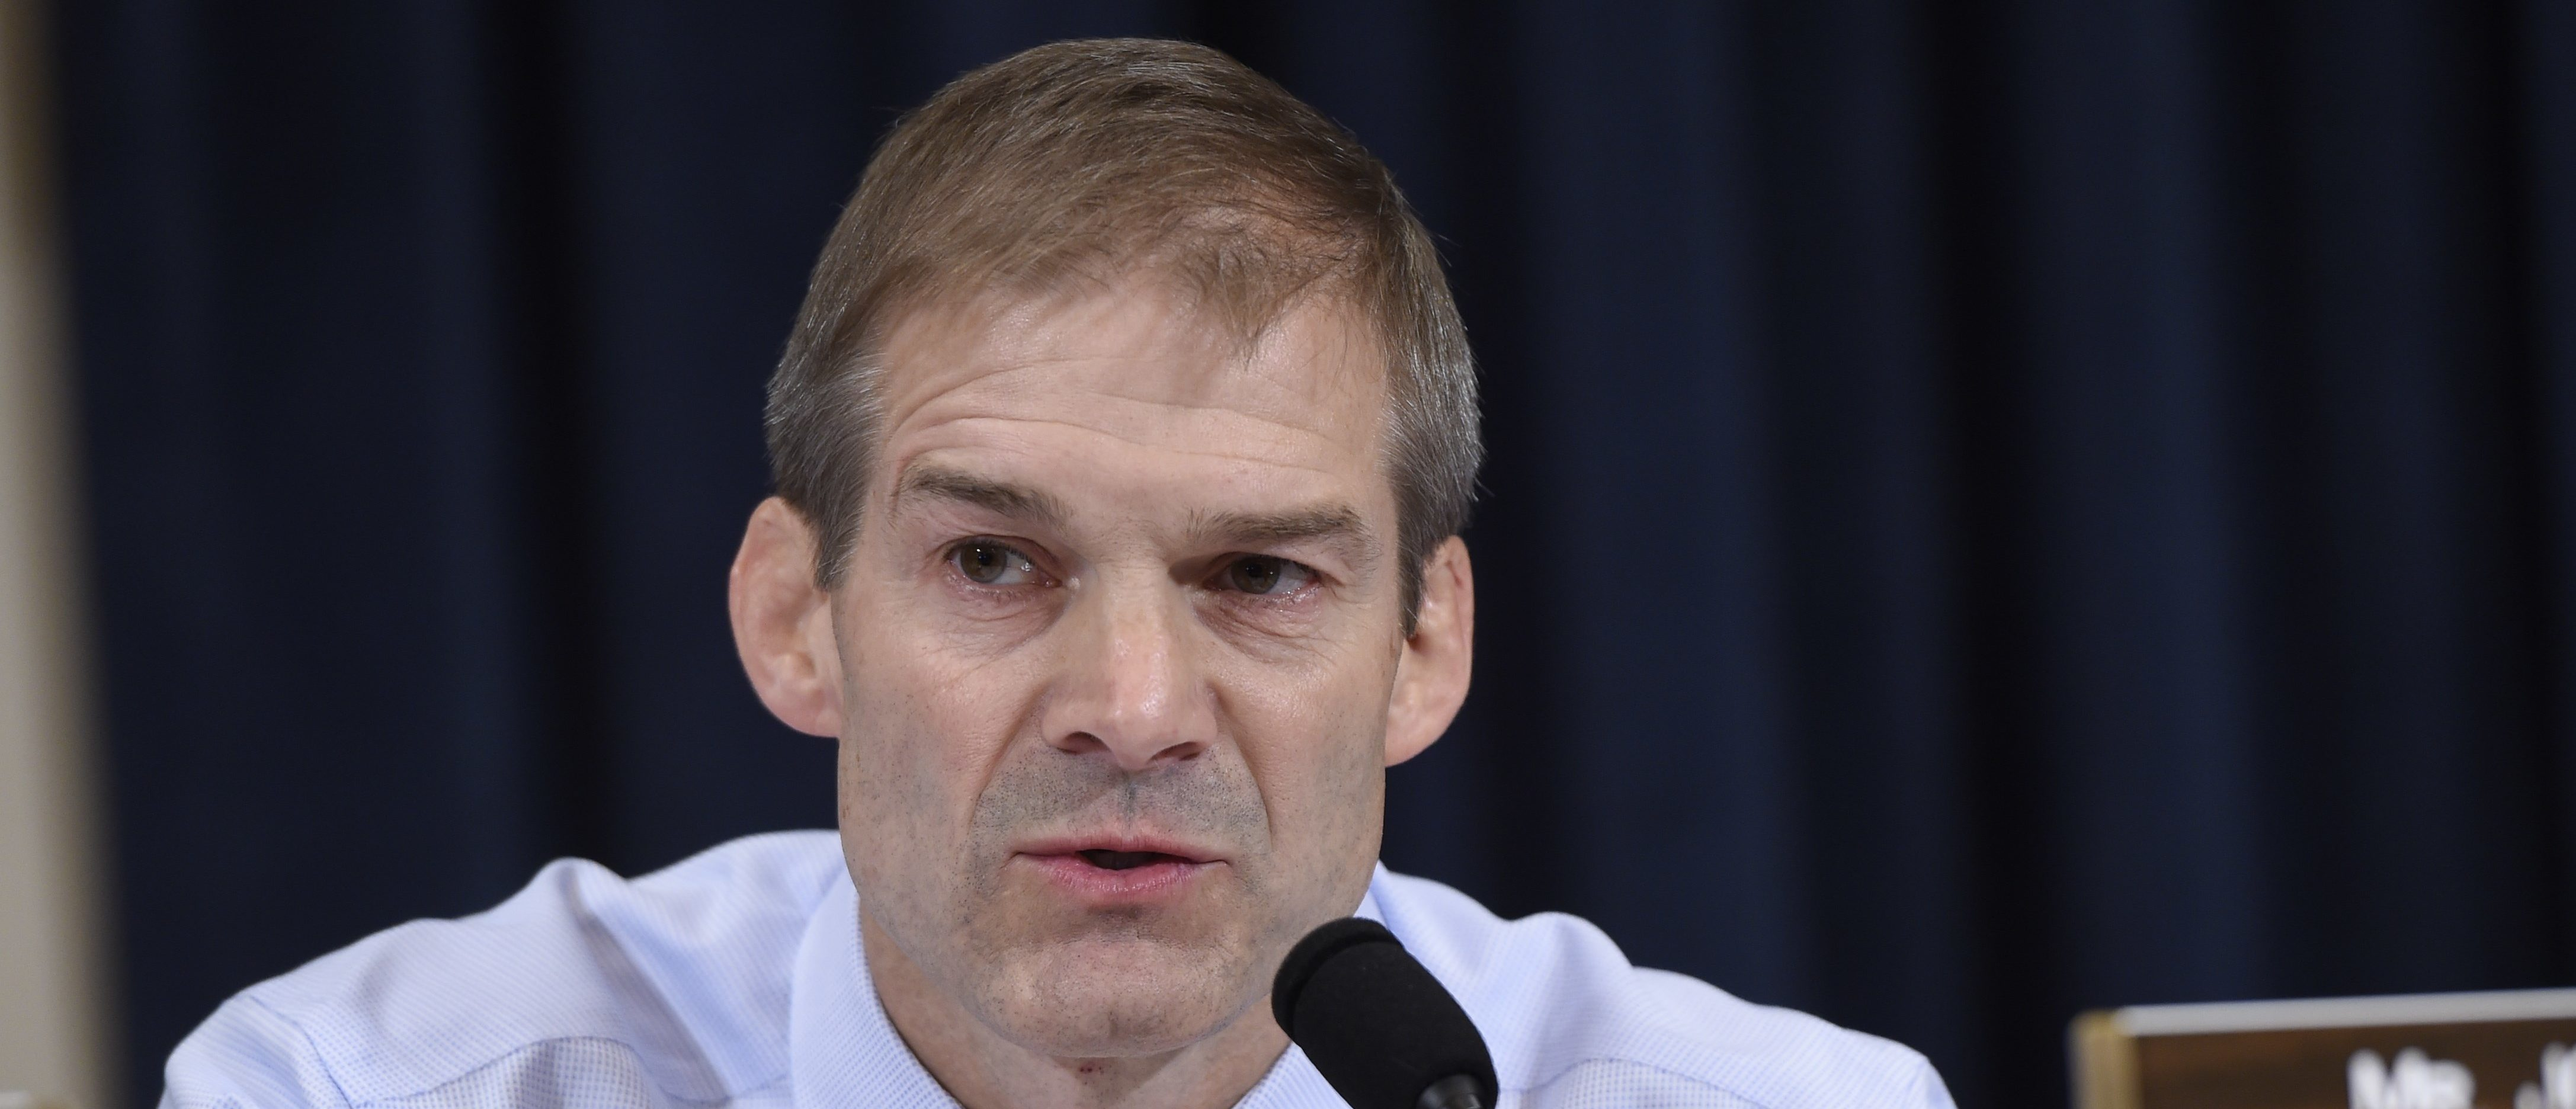 Republican US Representative from Ohio Jim Jordan questions former US Secretary of State and Democratic Presidential hopeful Hillary Clinton as she testifies before the House Select Committee on Benghazi on Capitol Hill in Washington, DC, October 22, 2015 (SAUL LOEB/AFP/Getty Images)